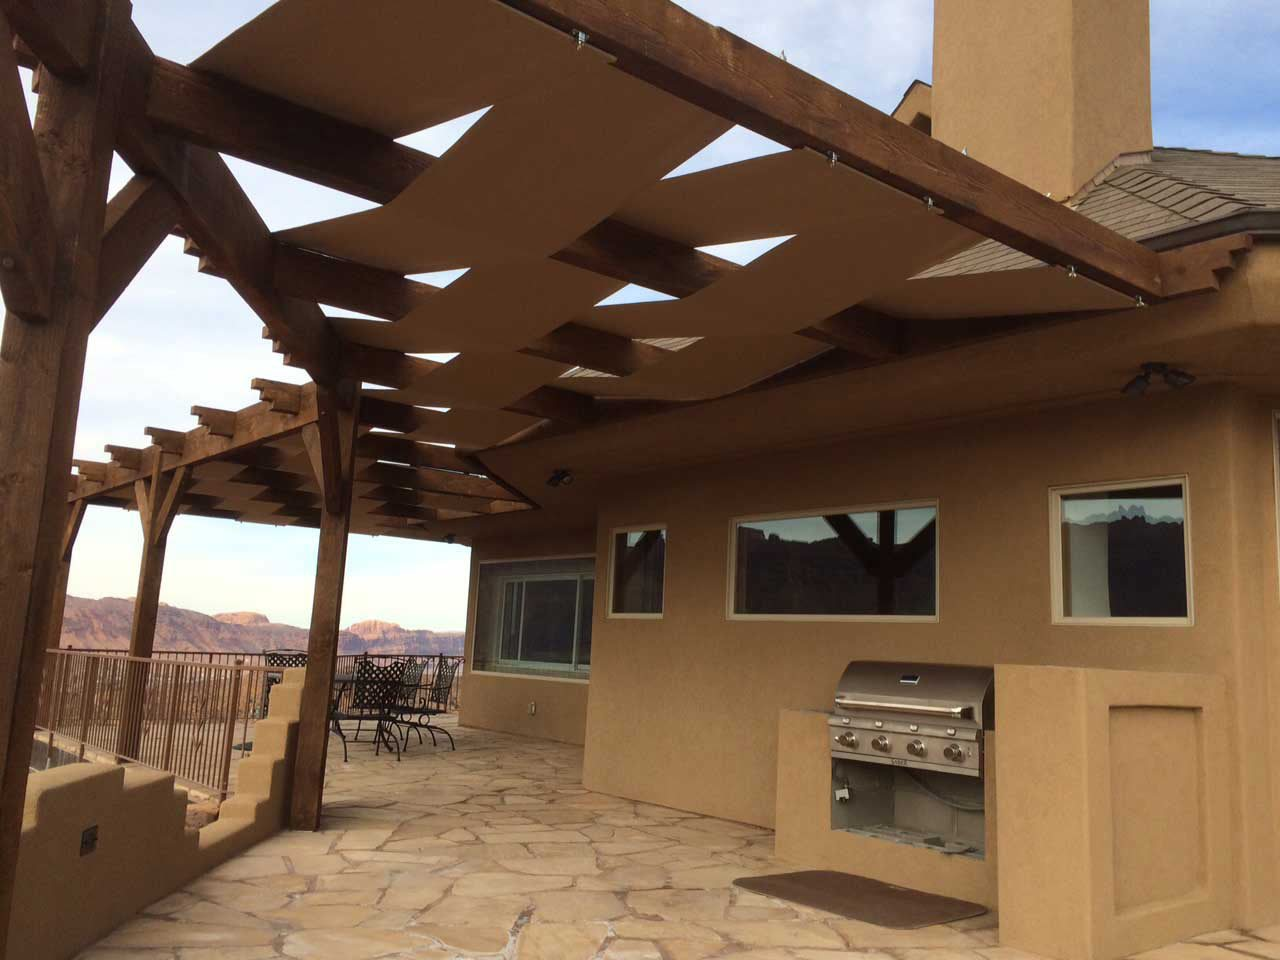 12 pergola roofing design ideas western timber frame for Southwest pergola